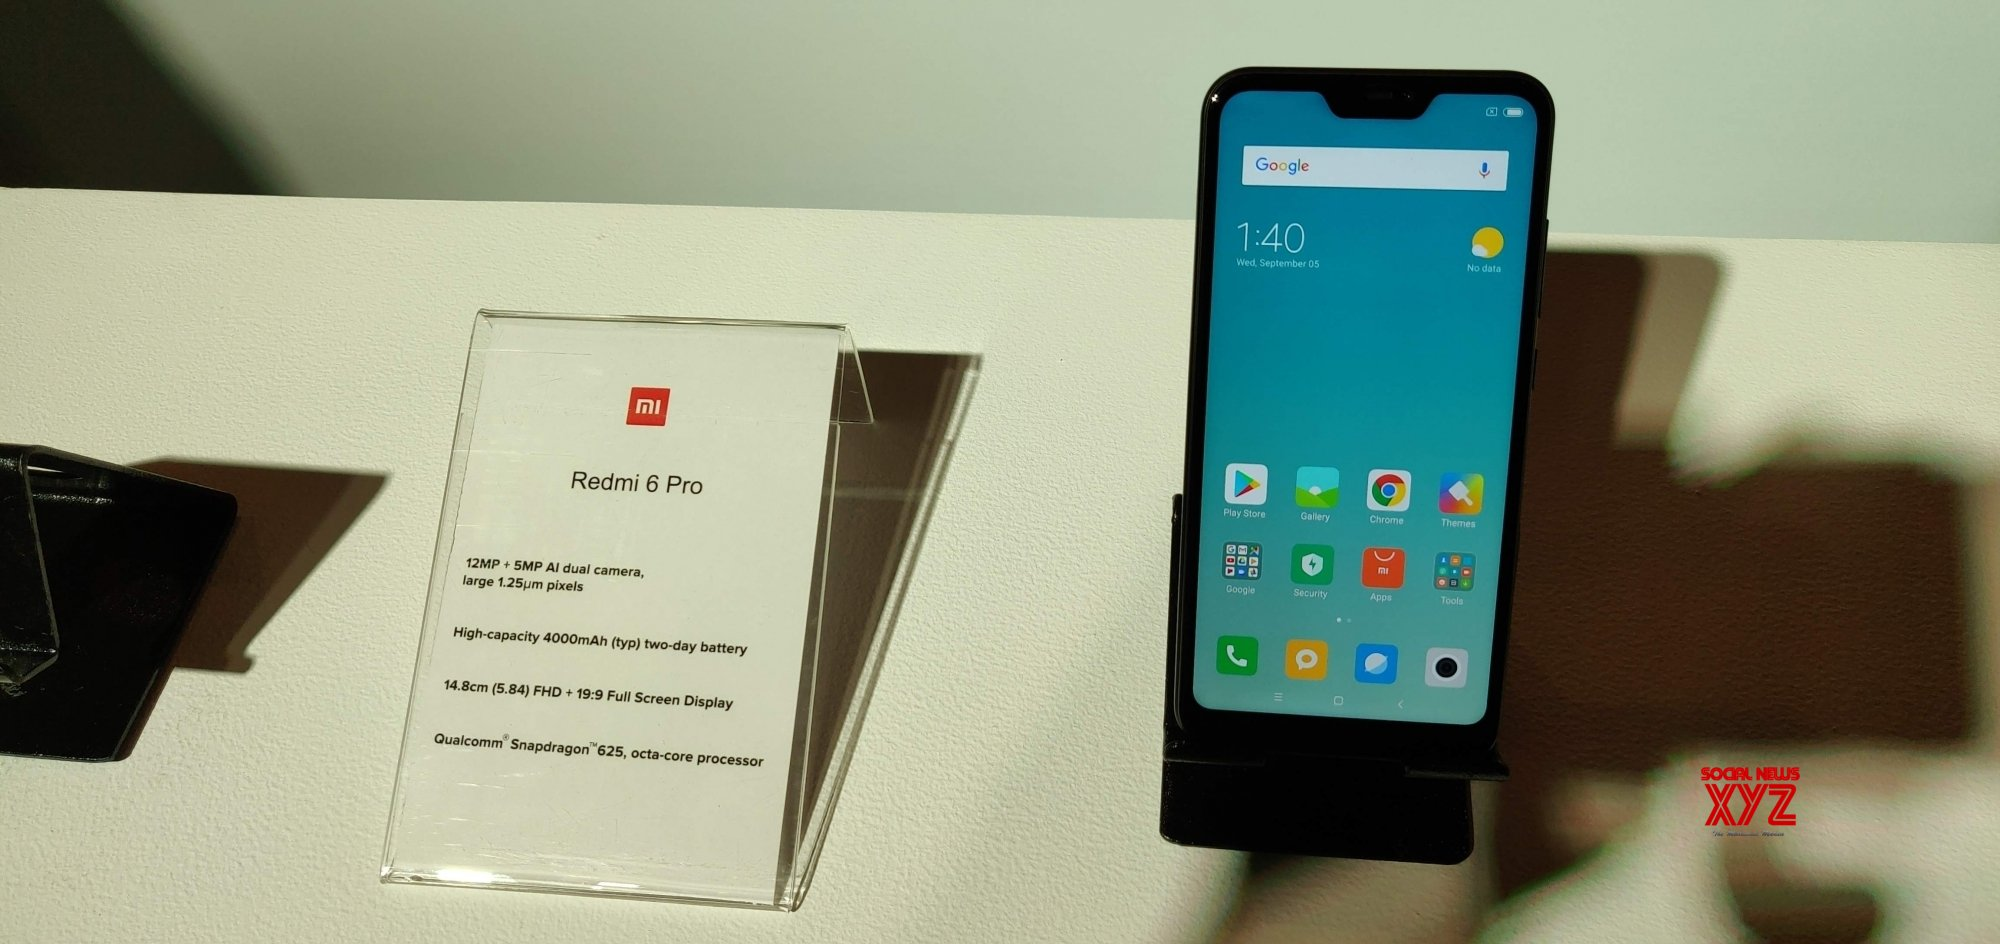 Xiaomi Redmi 6 Pro gets Android 9 Pie update in India